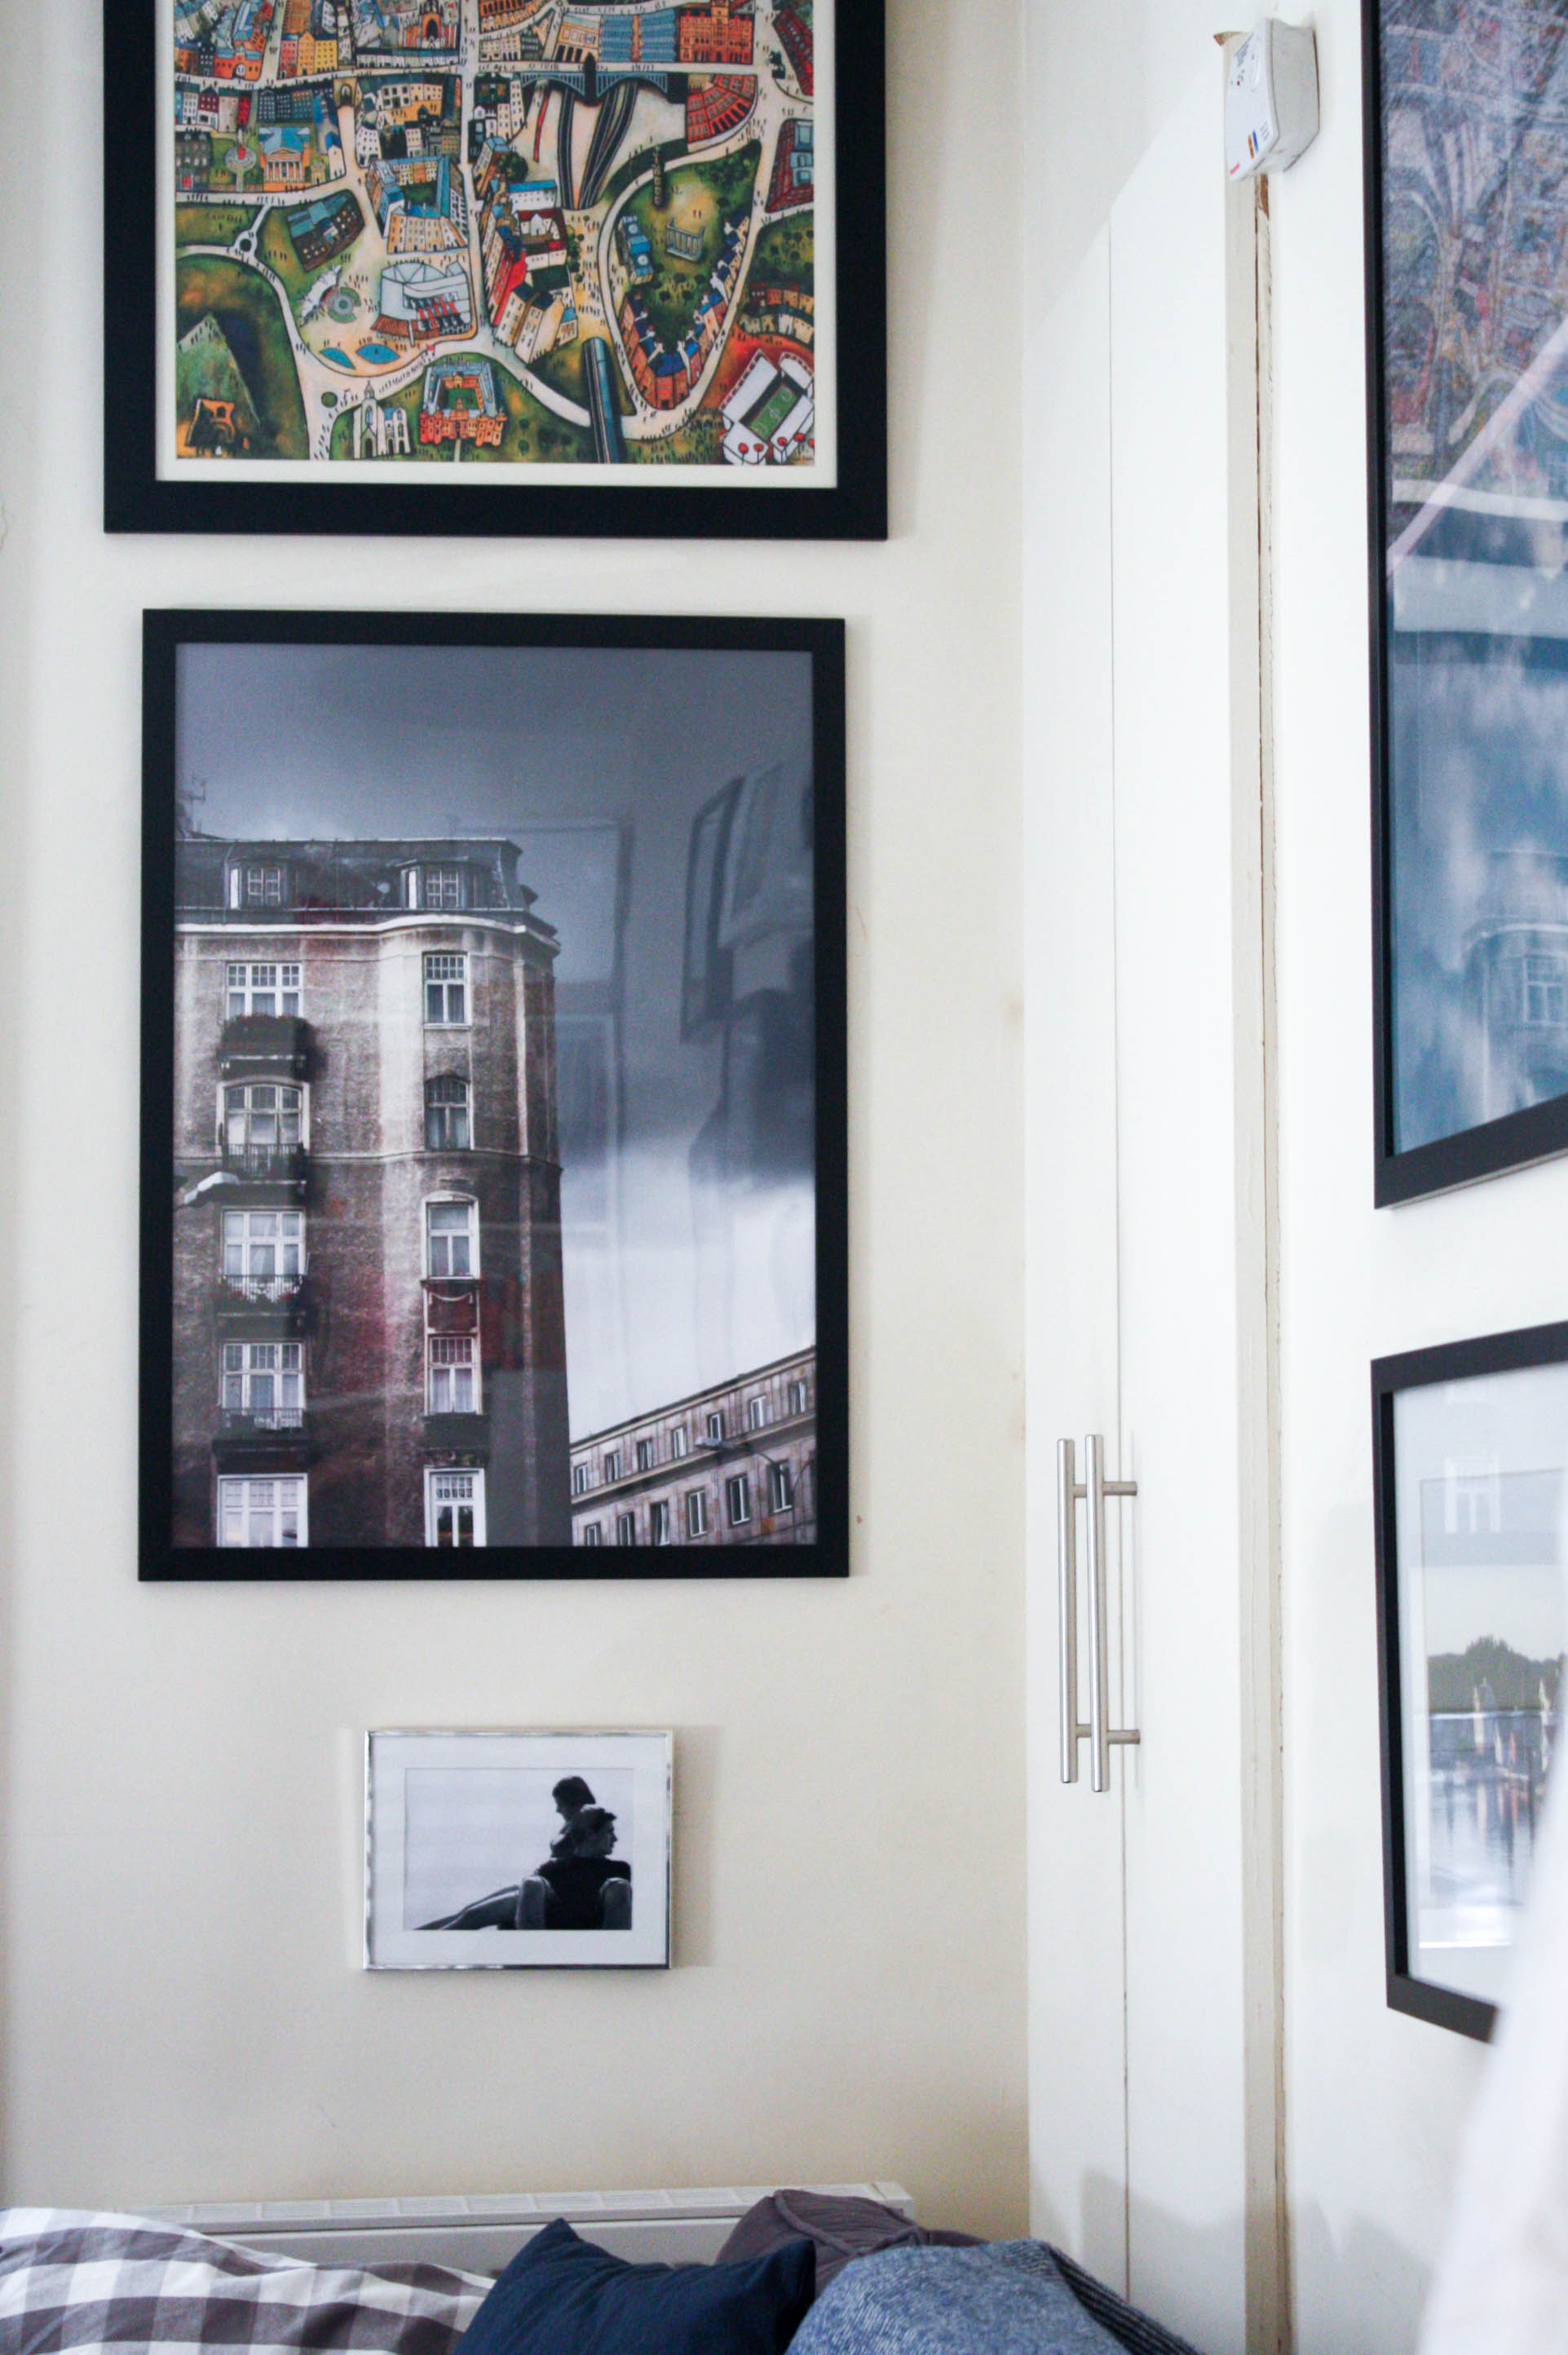 how to choose photosfor your glallery wall - edinburgh bloger (1 of 8)